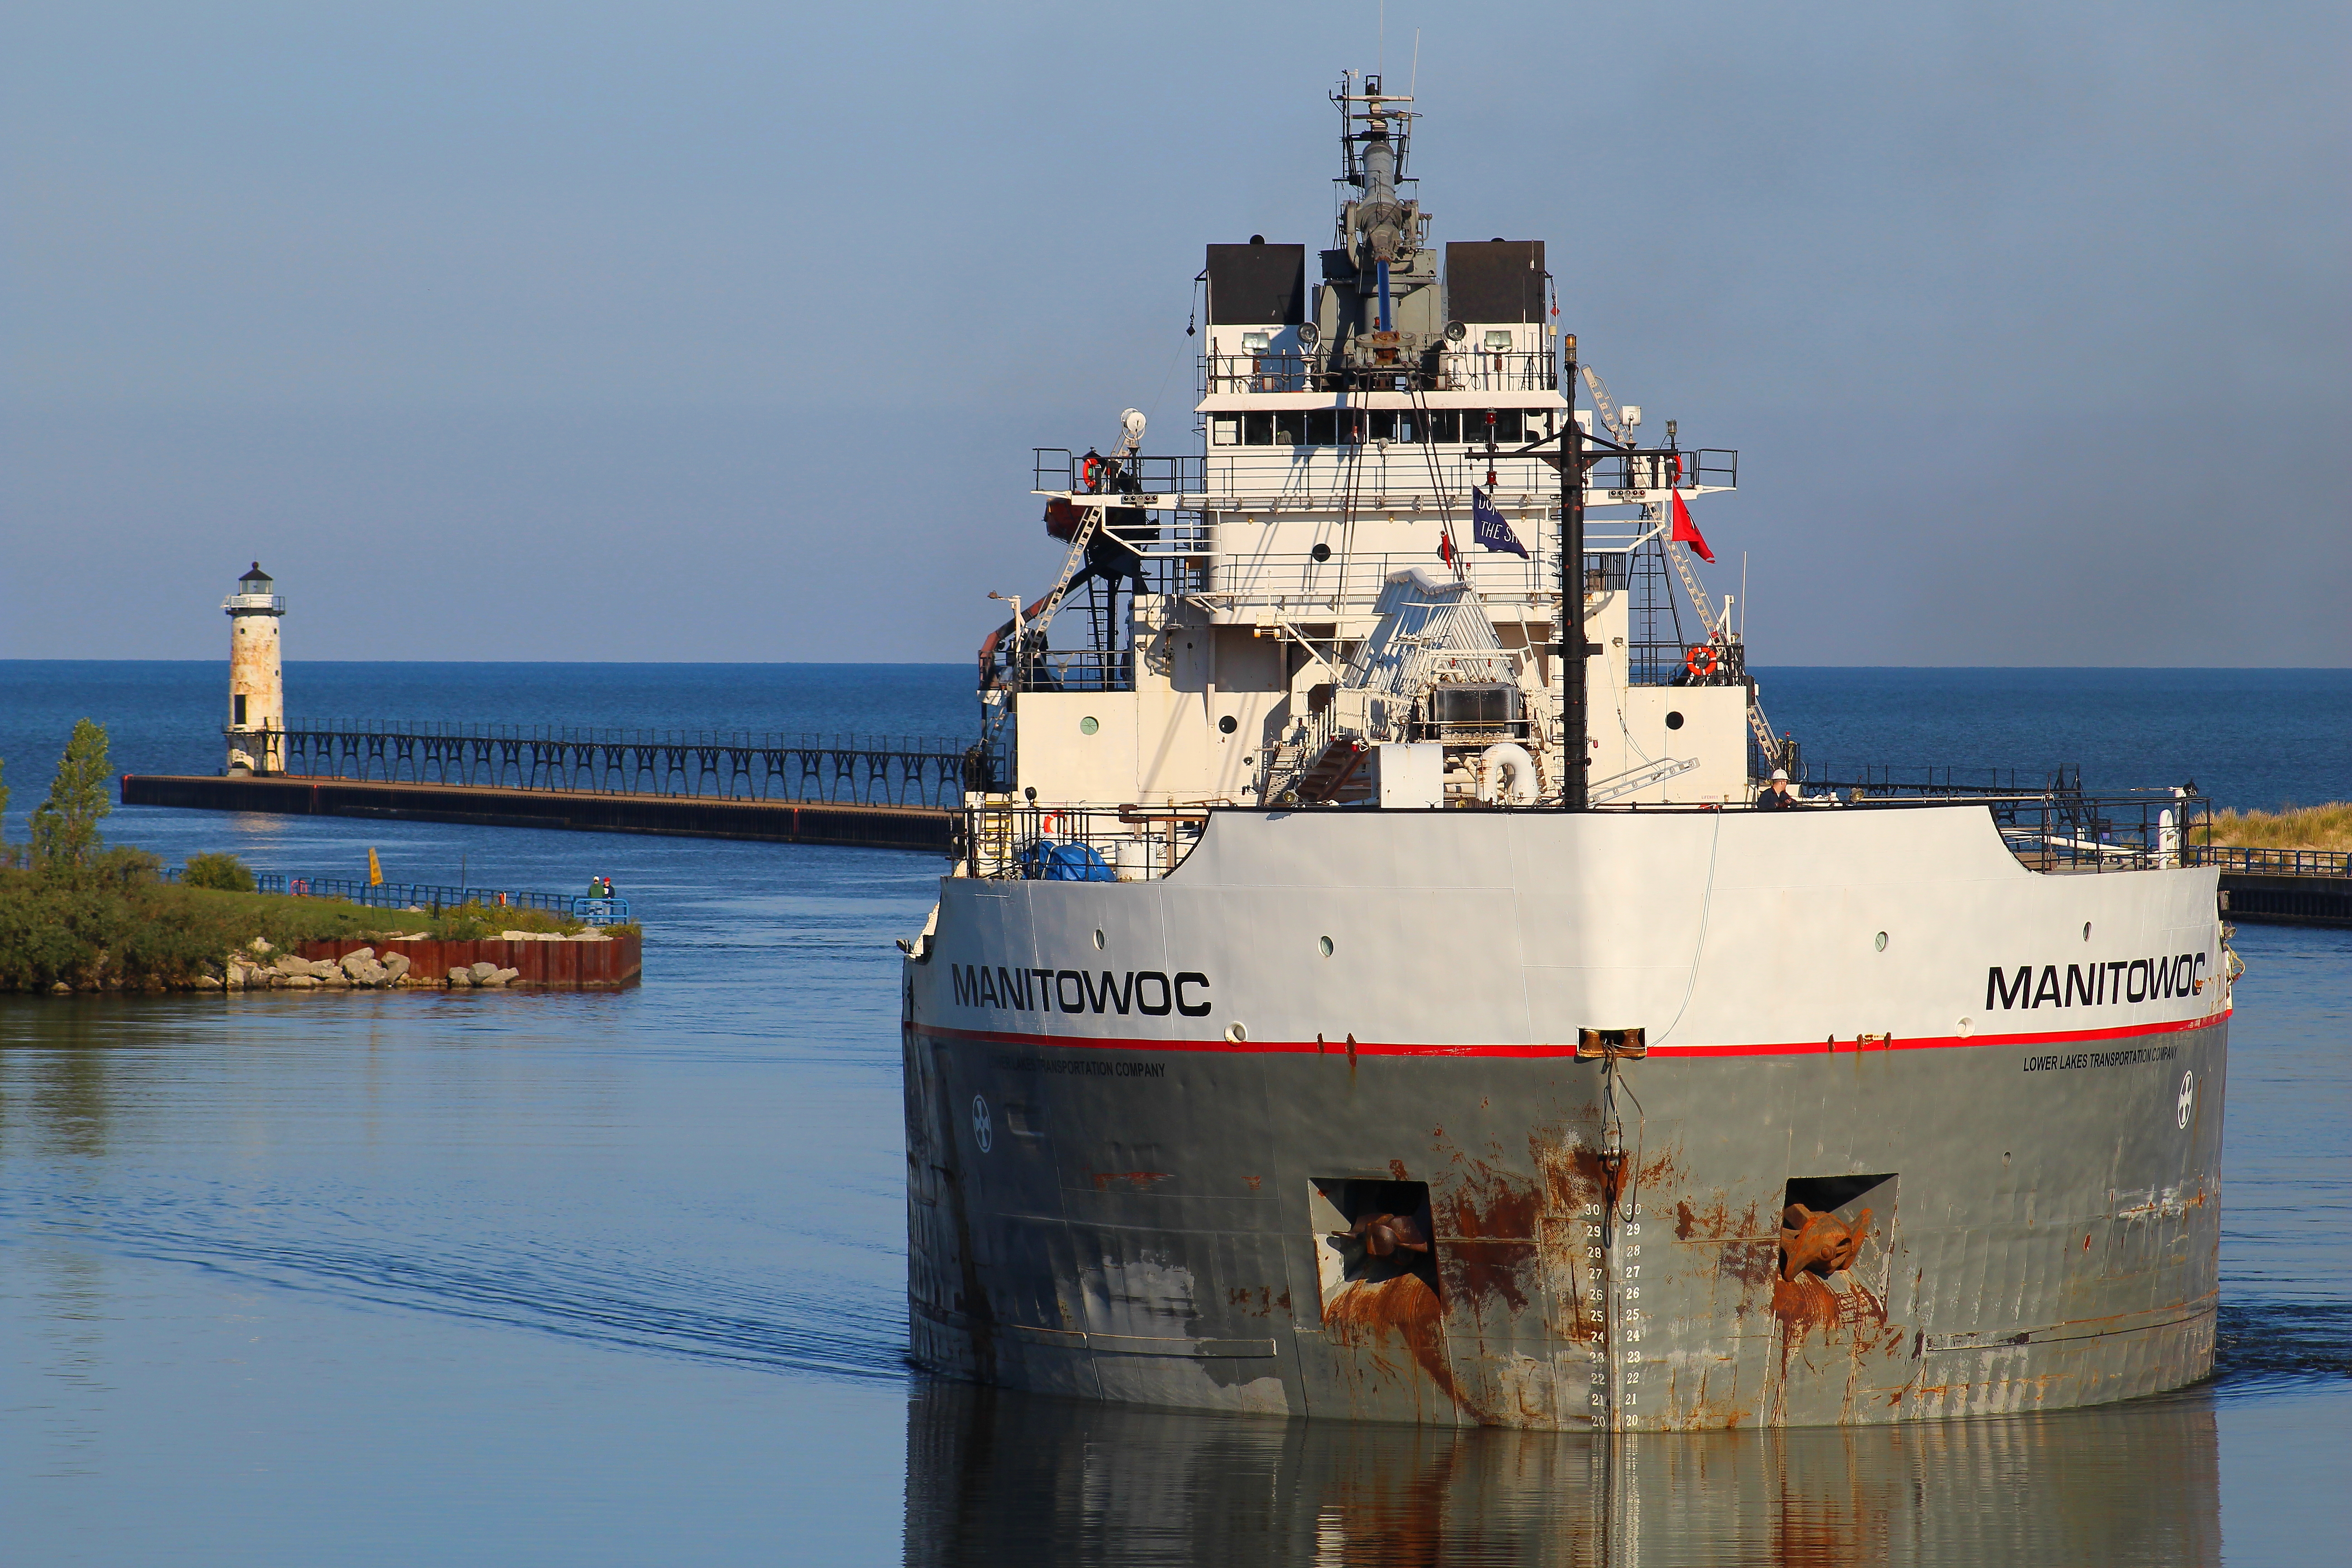 Freighter Manitowoc entering the Manistee River Channel